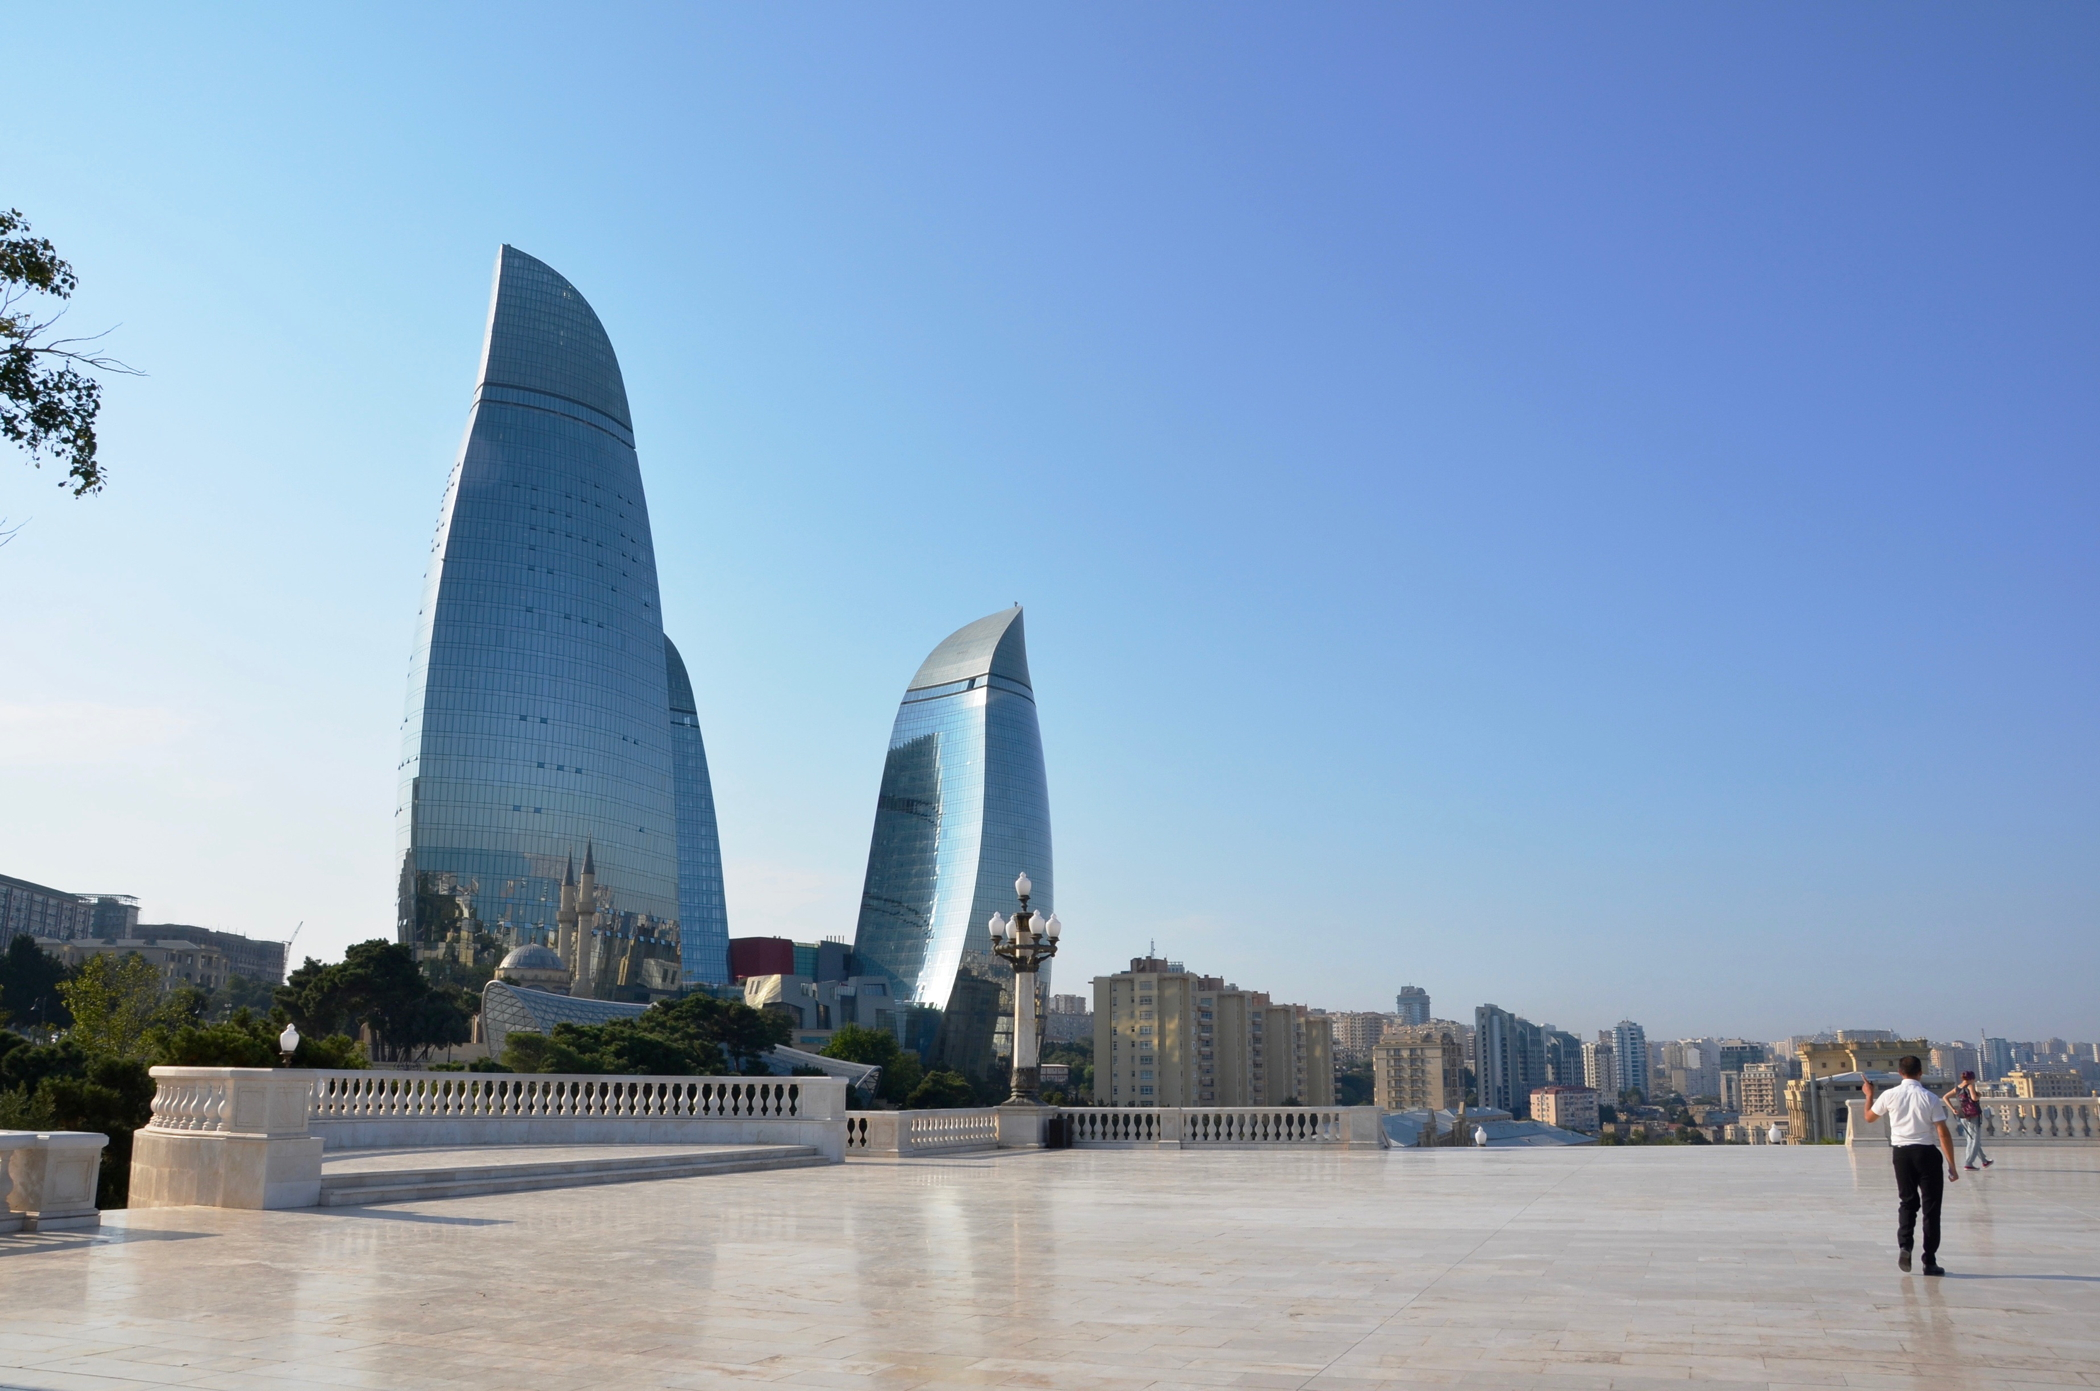 Rundreise_Aserbaidschan_Baku_Flame_Towers